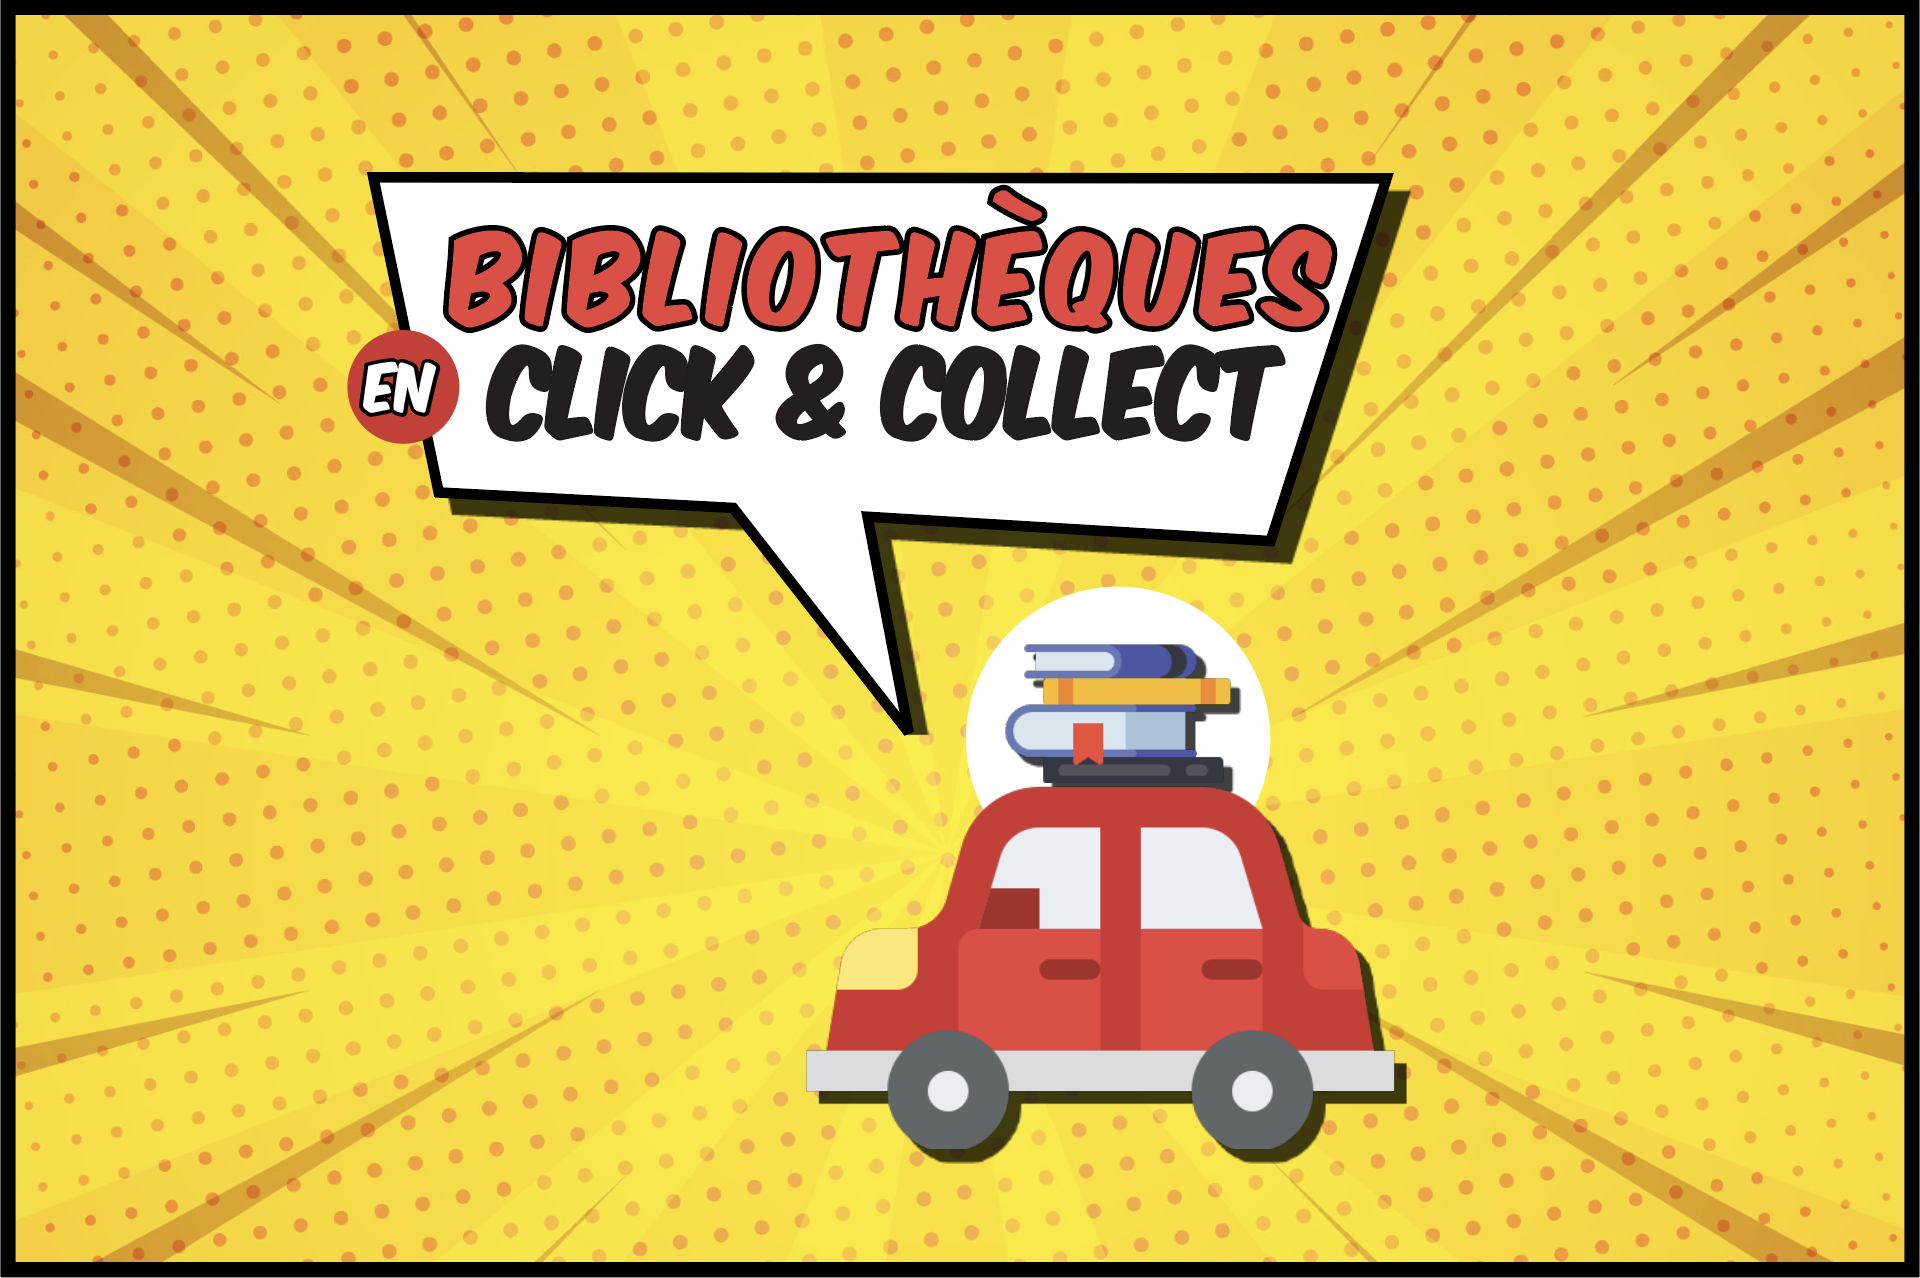 Le Click & Collect